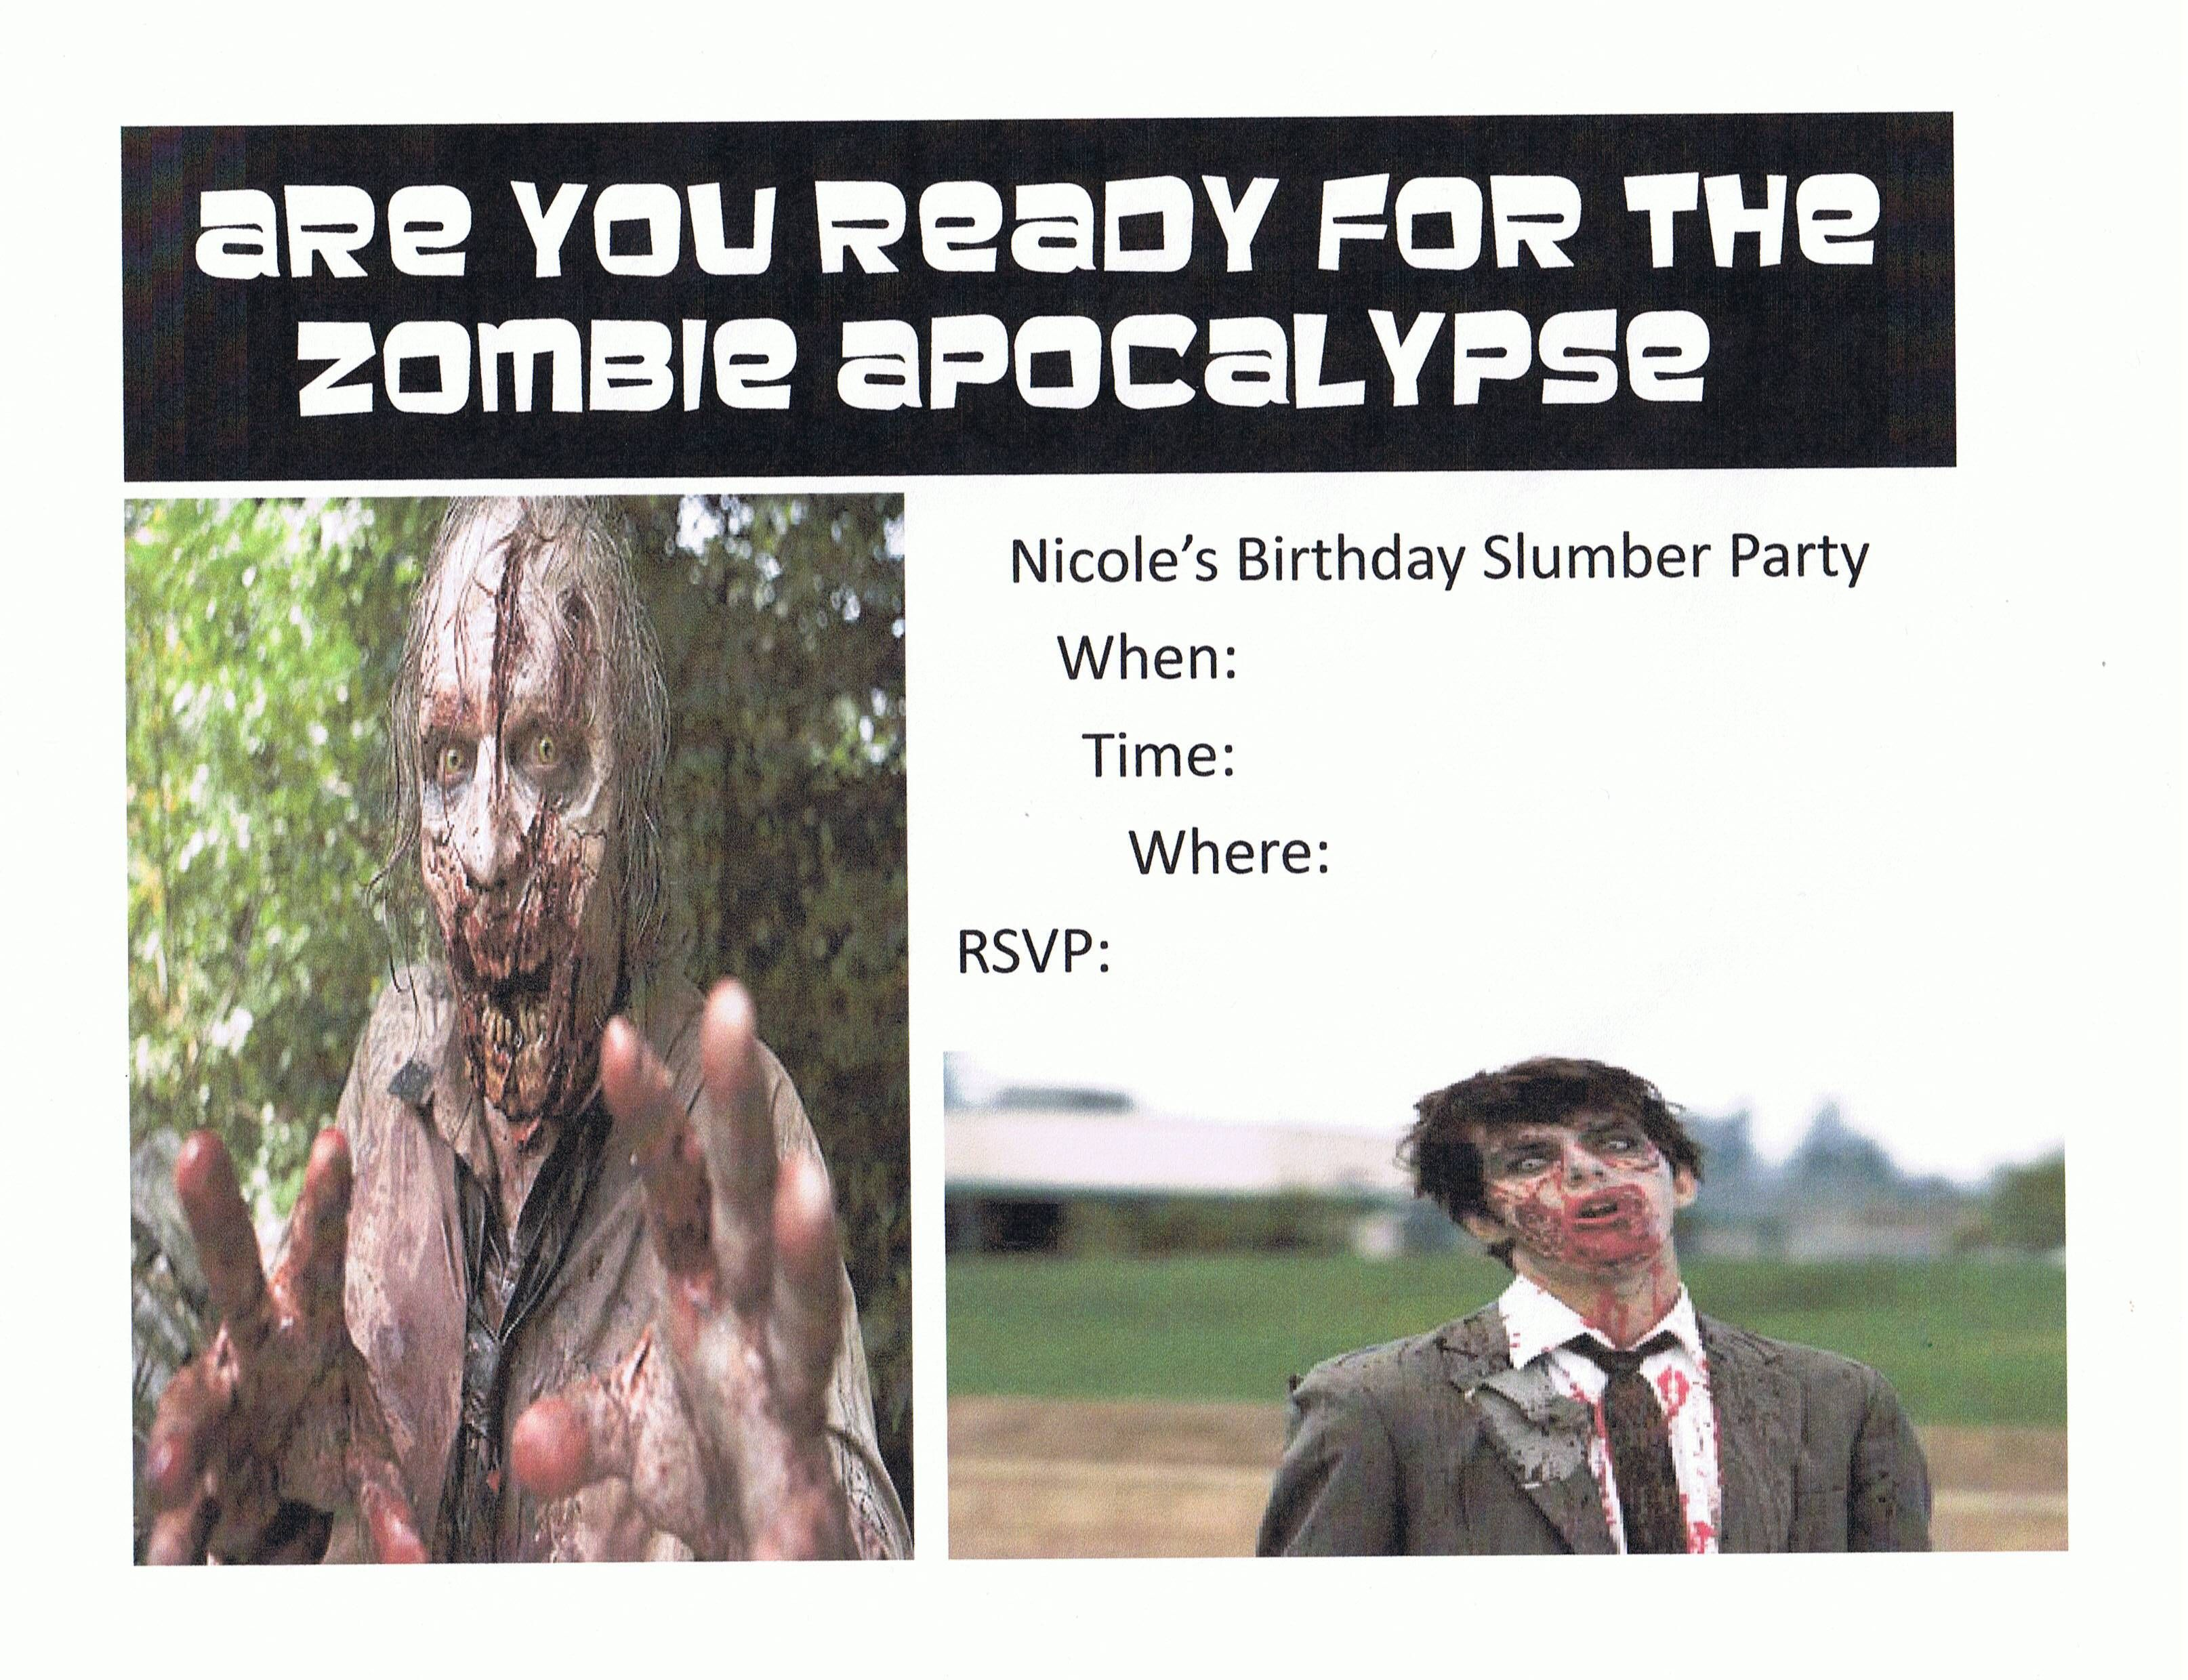 Zombie Apocalypse party invitation for 11th birthday #zombieapocalypseparty Zombie Apocalypse party invitation for 11th birthday #zombieapocalypseparty